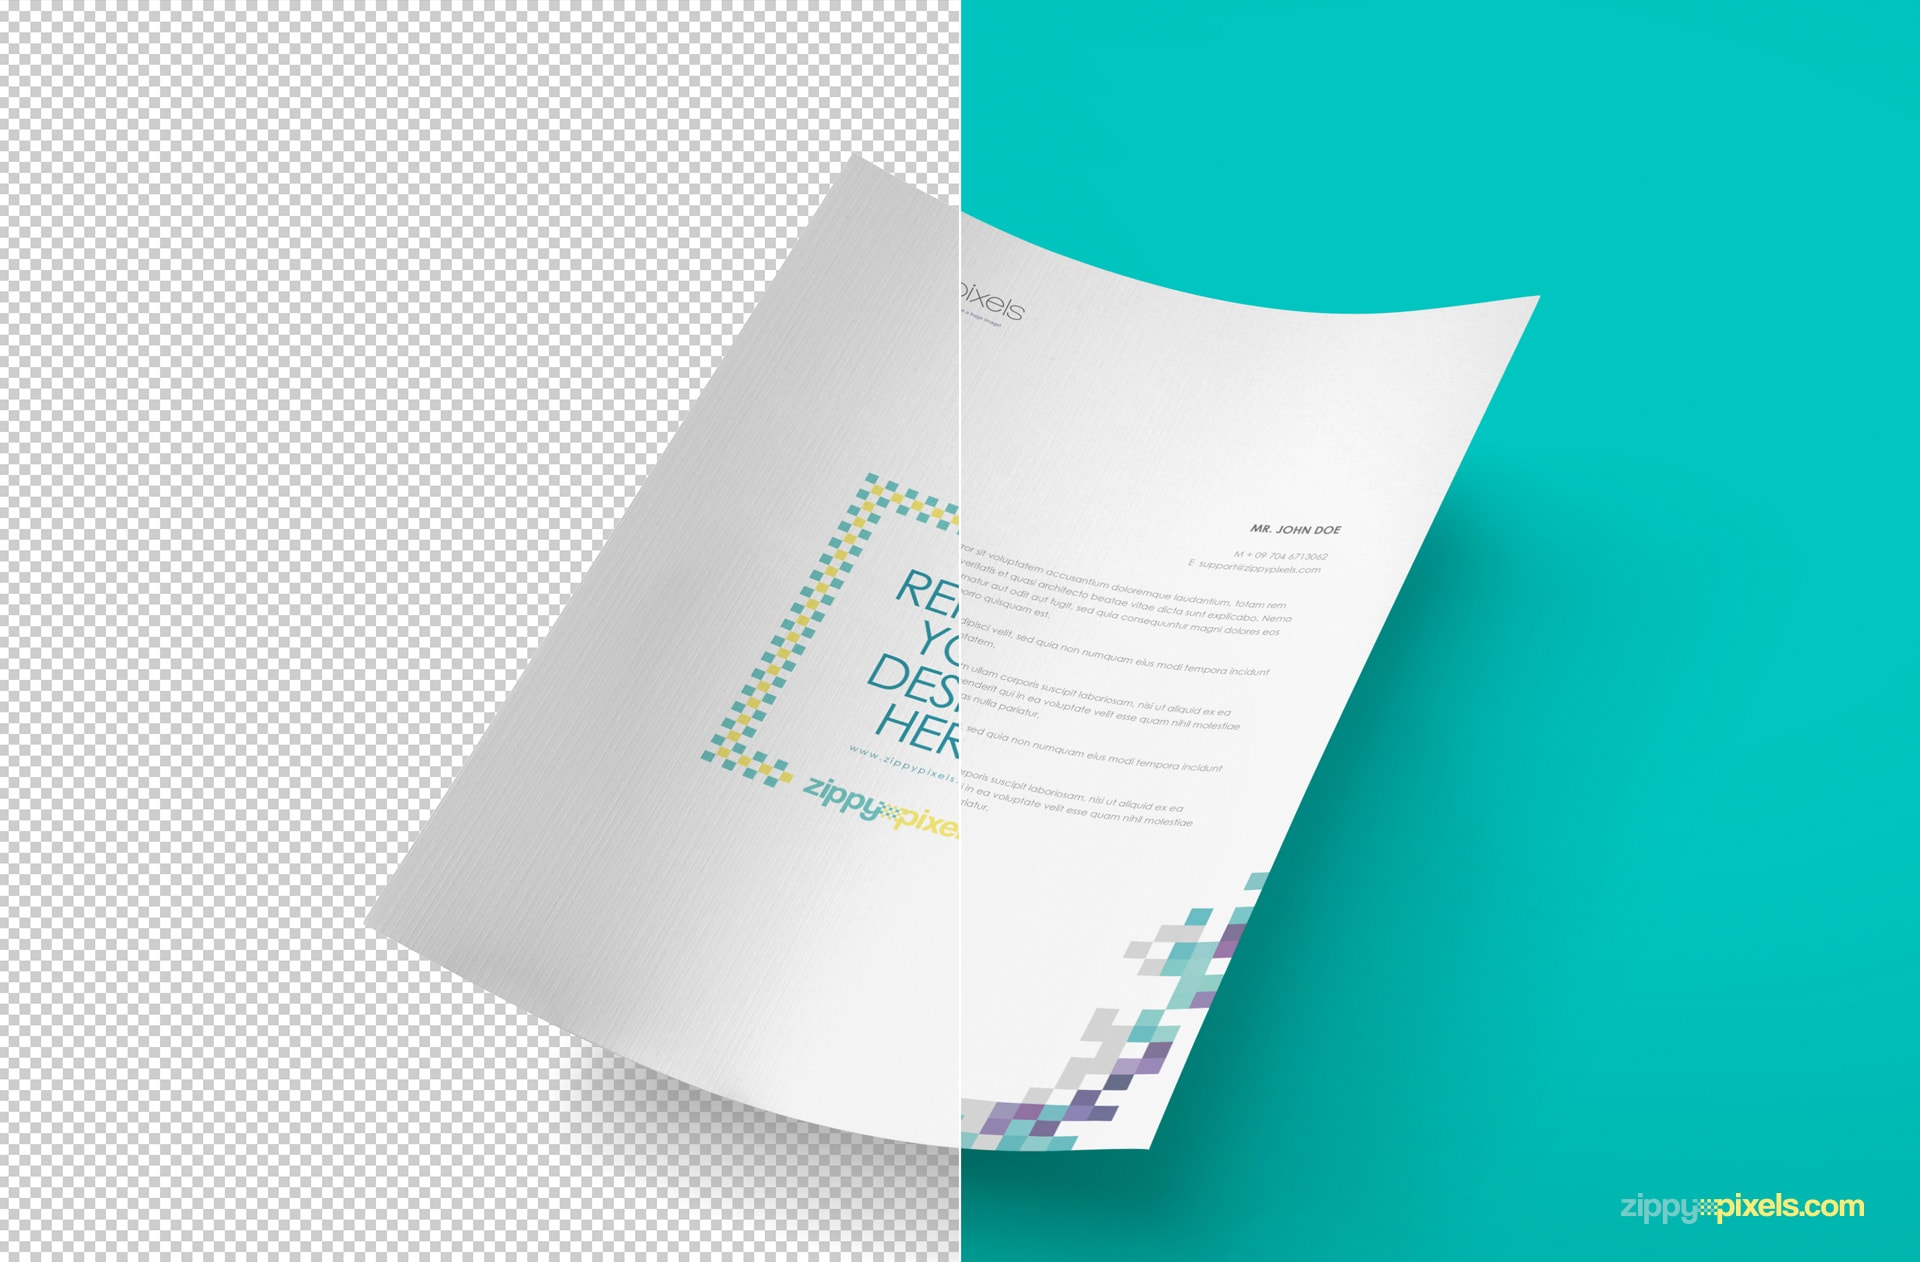 free a4 size paper psd with 8.27 x 11.69 inch dimensions